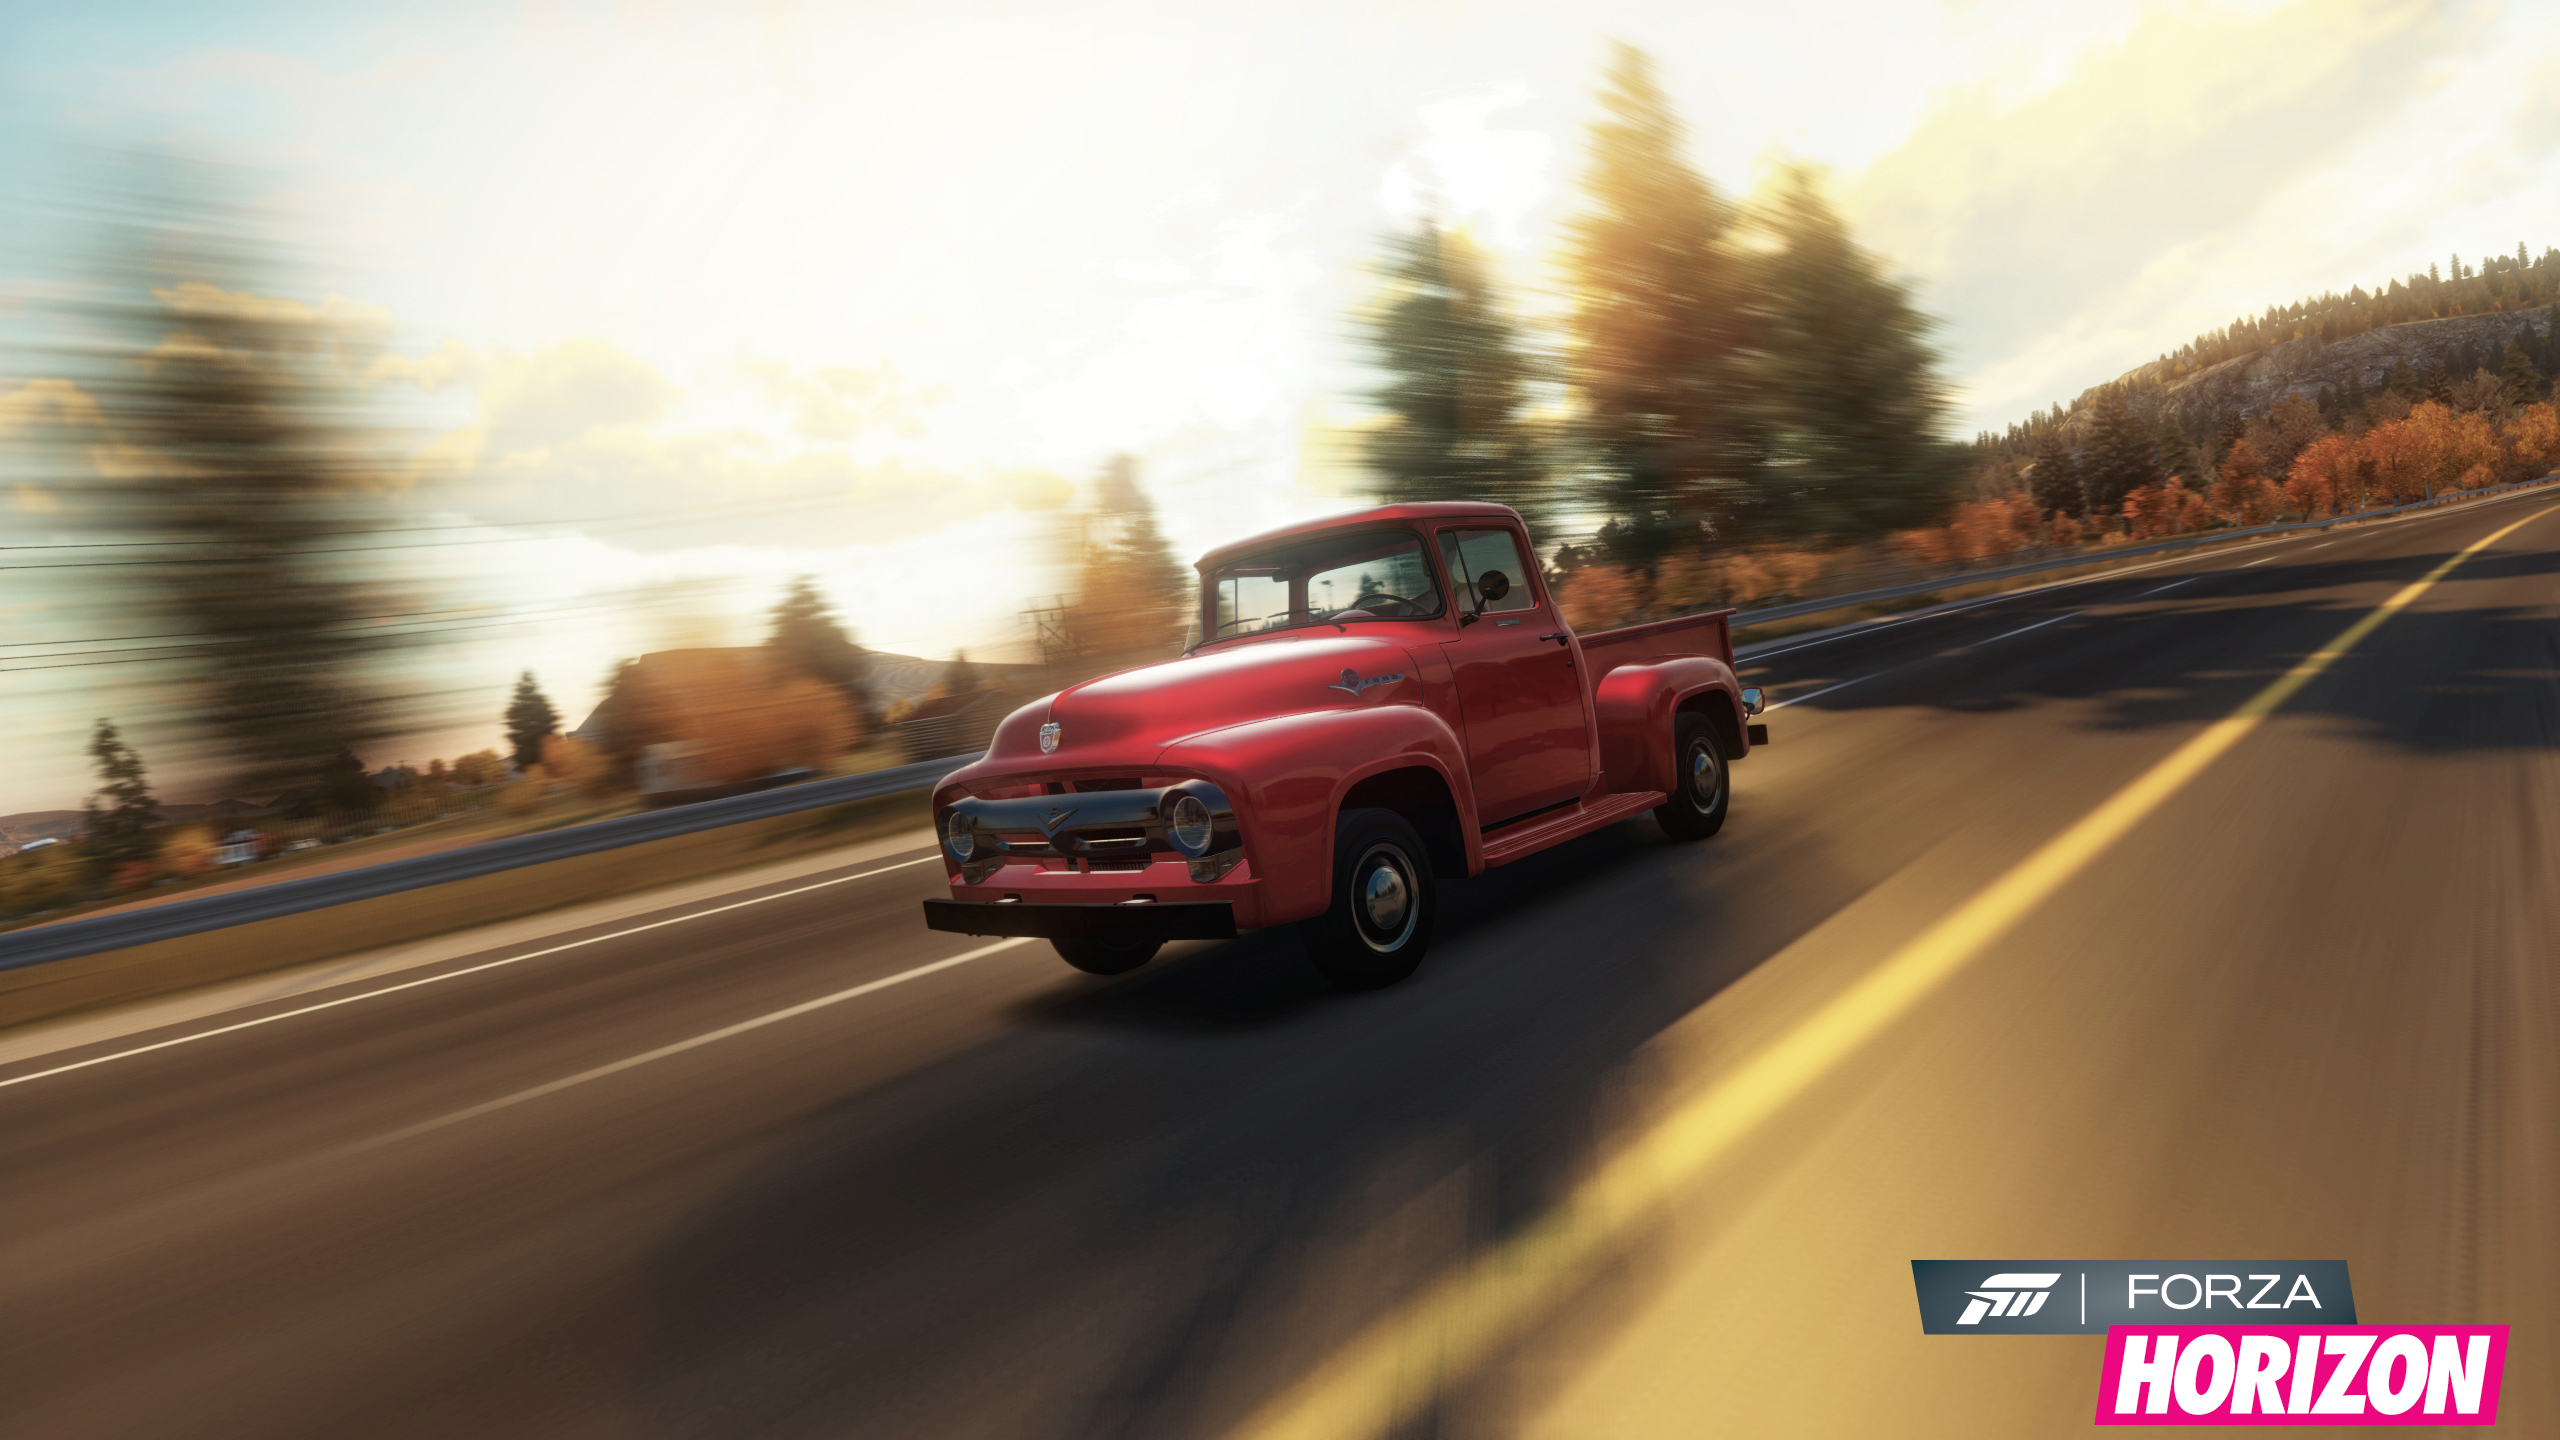 Forza Horizion 1000 Club Pack Drops Today | Gamer Living